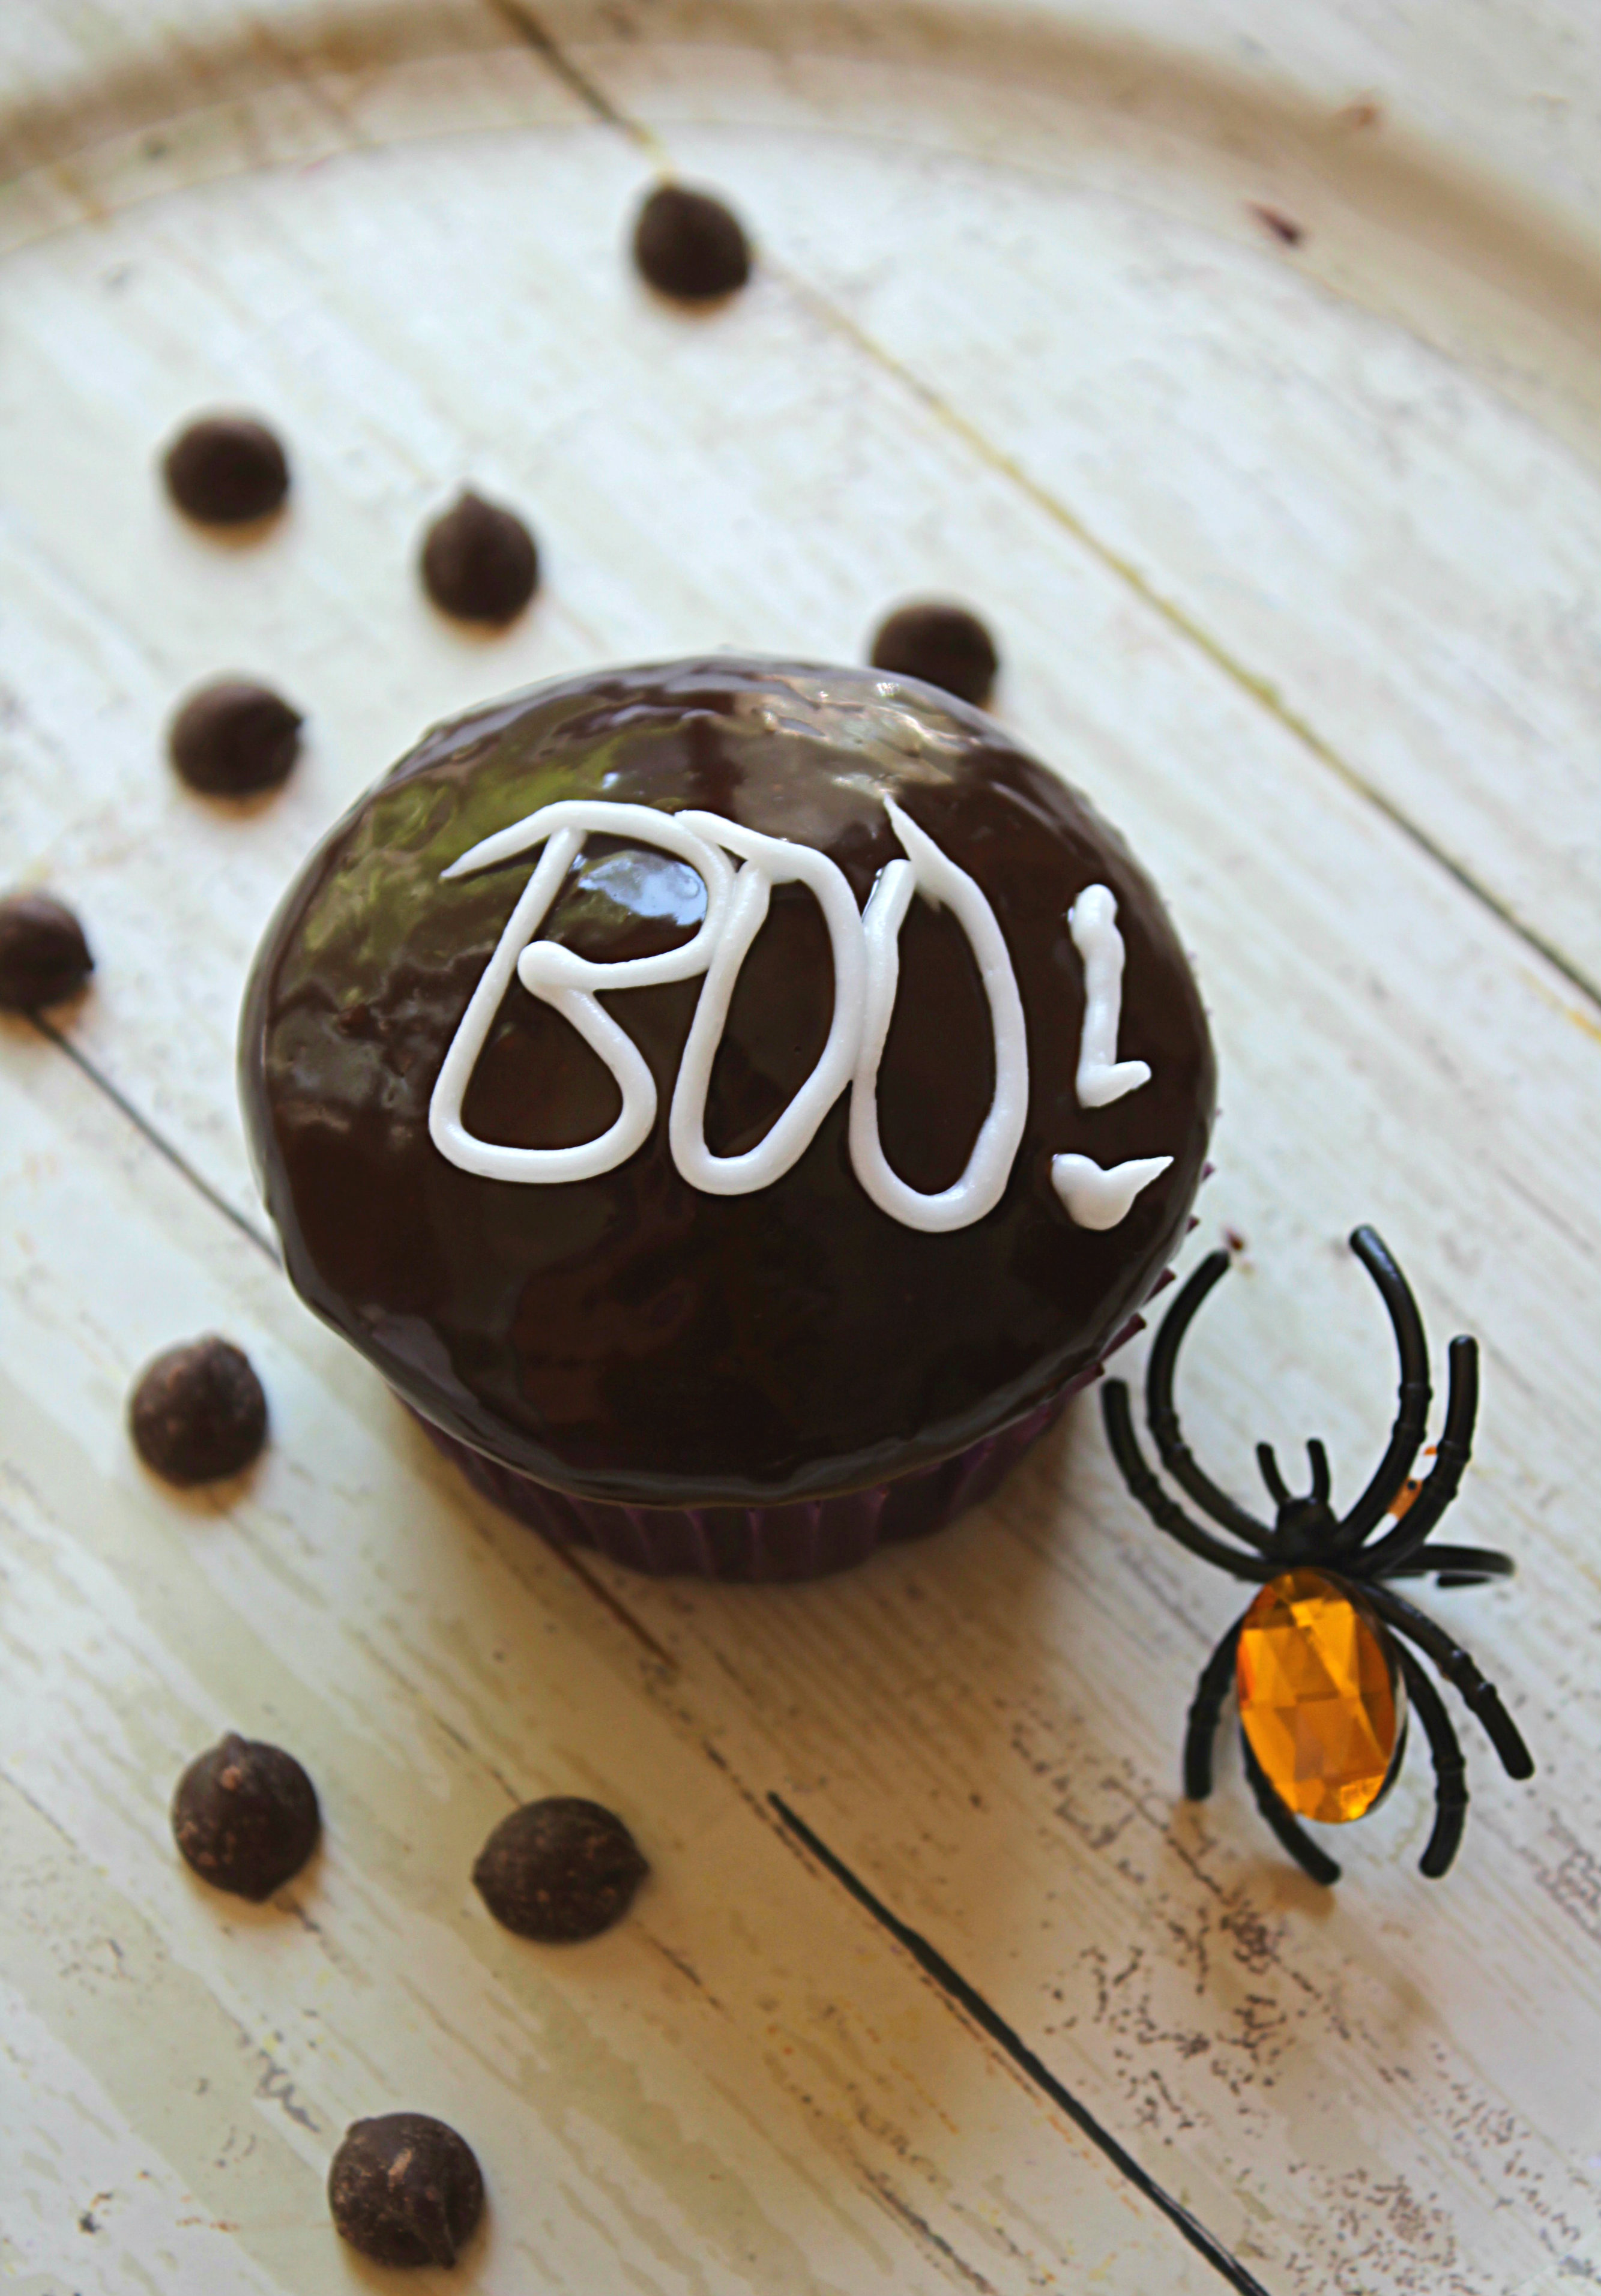 Super simple 'BOO!' chocolate ganache glazed Halloween cupcakes